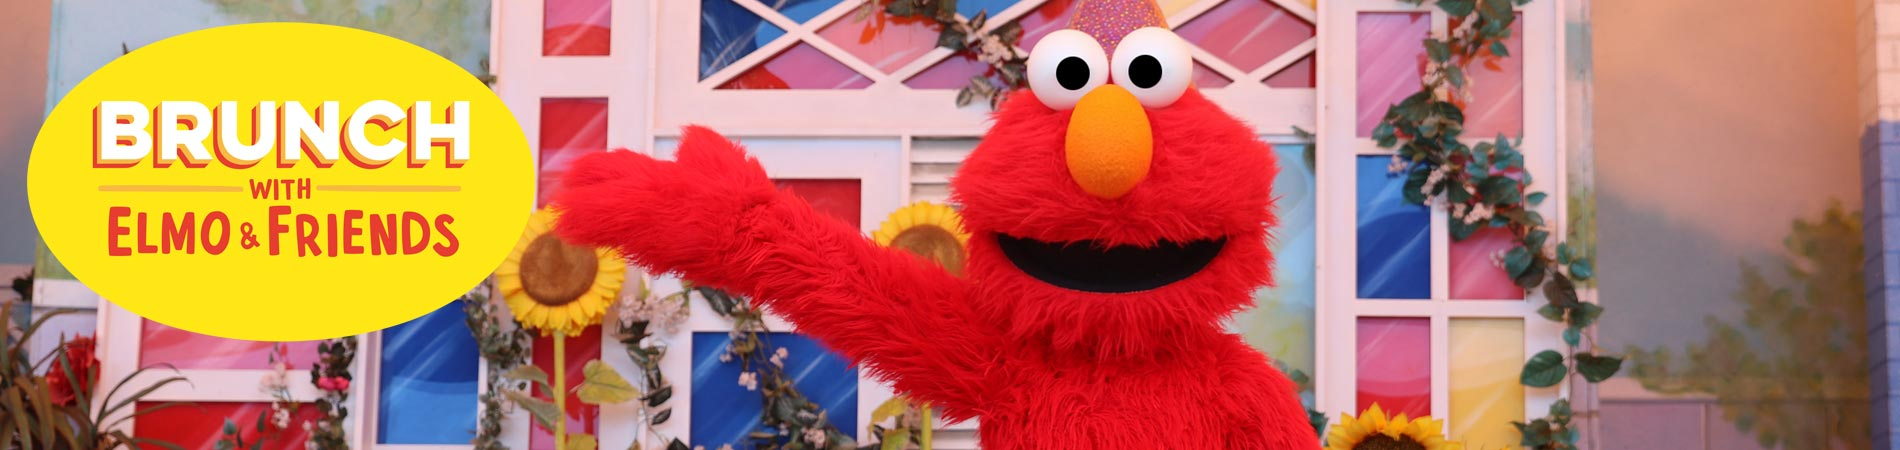 Brunch with Elmo and Friends at SeaWorld San Diego